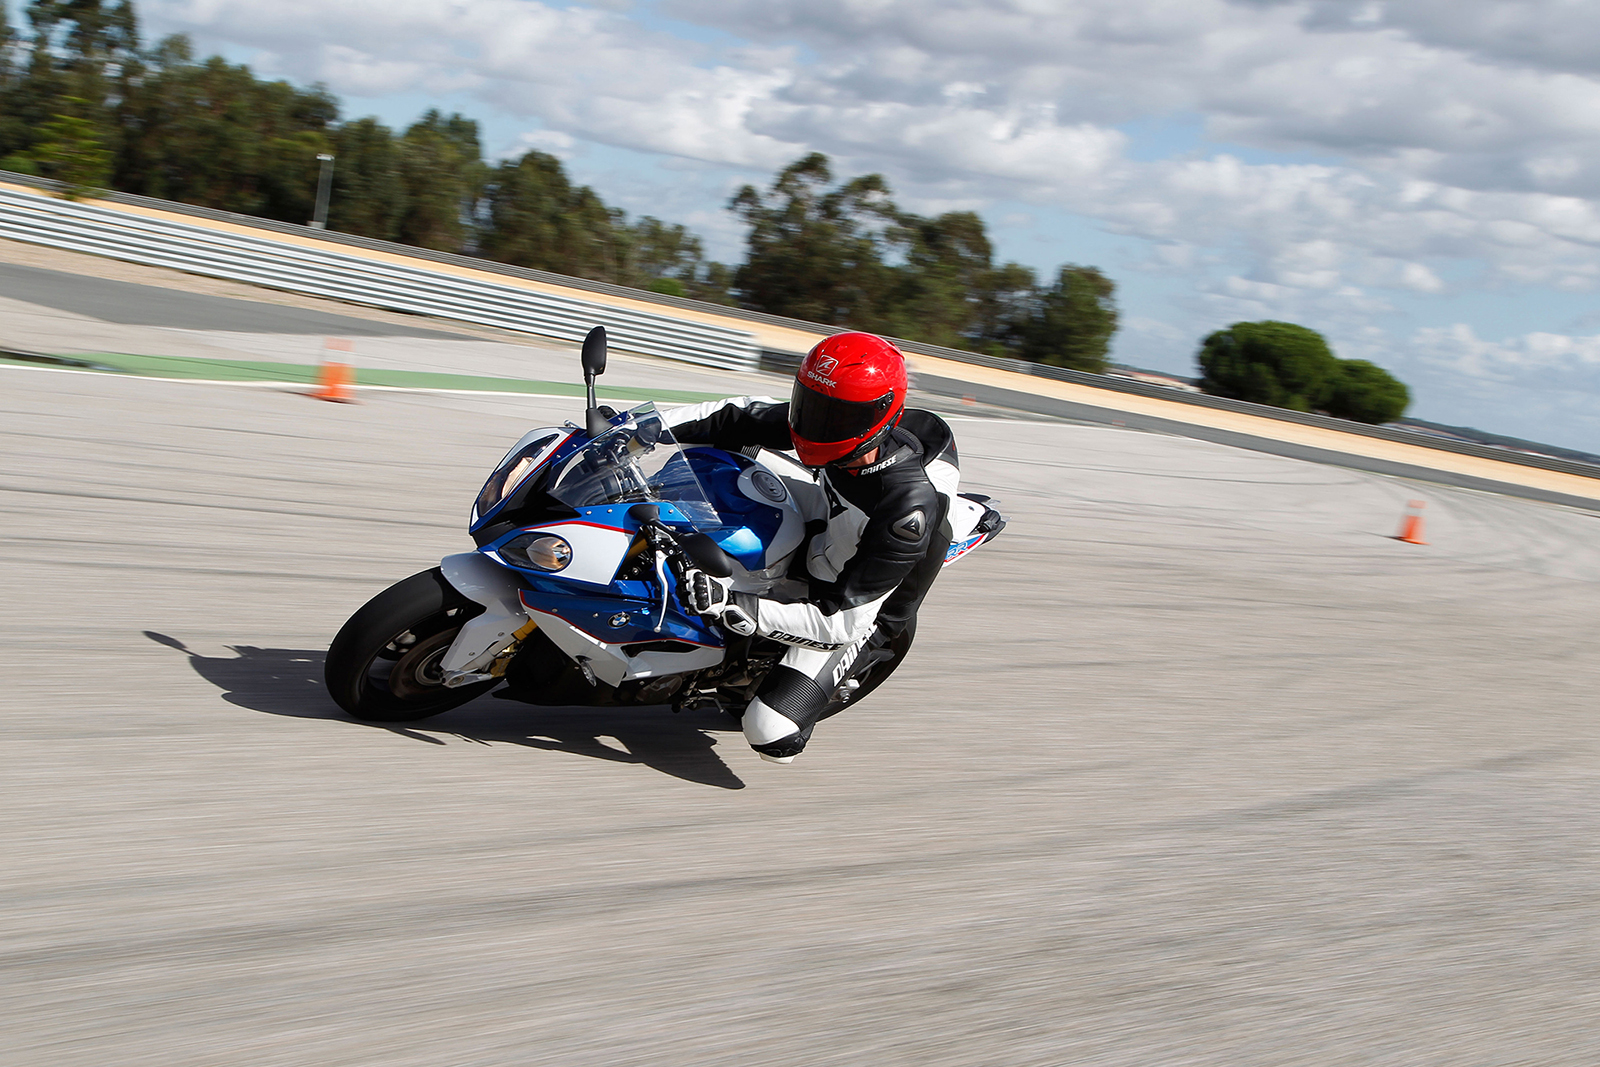 BMW offers retro-fit cornering ABS for S1000RR